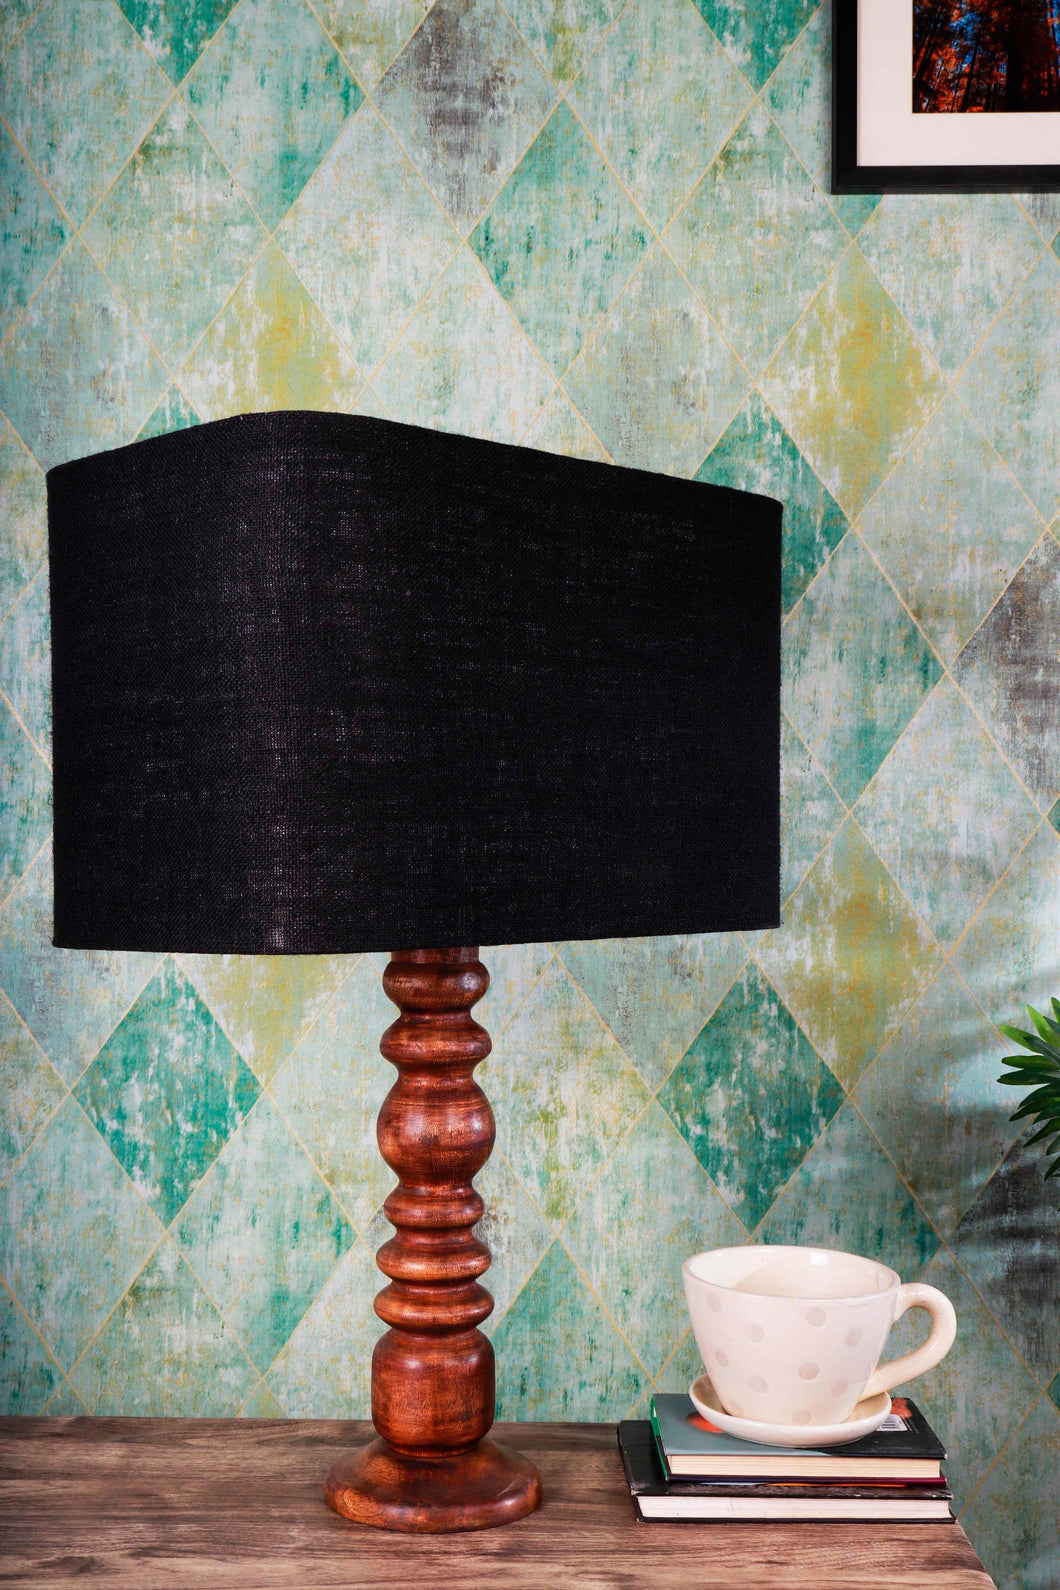 Bumpy Brown Table Lamp with Black Rectangular Lampshade